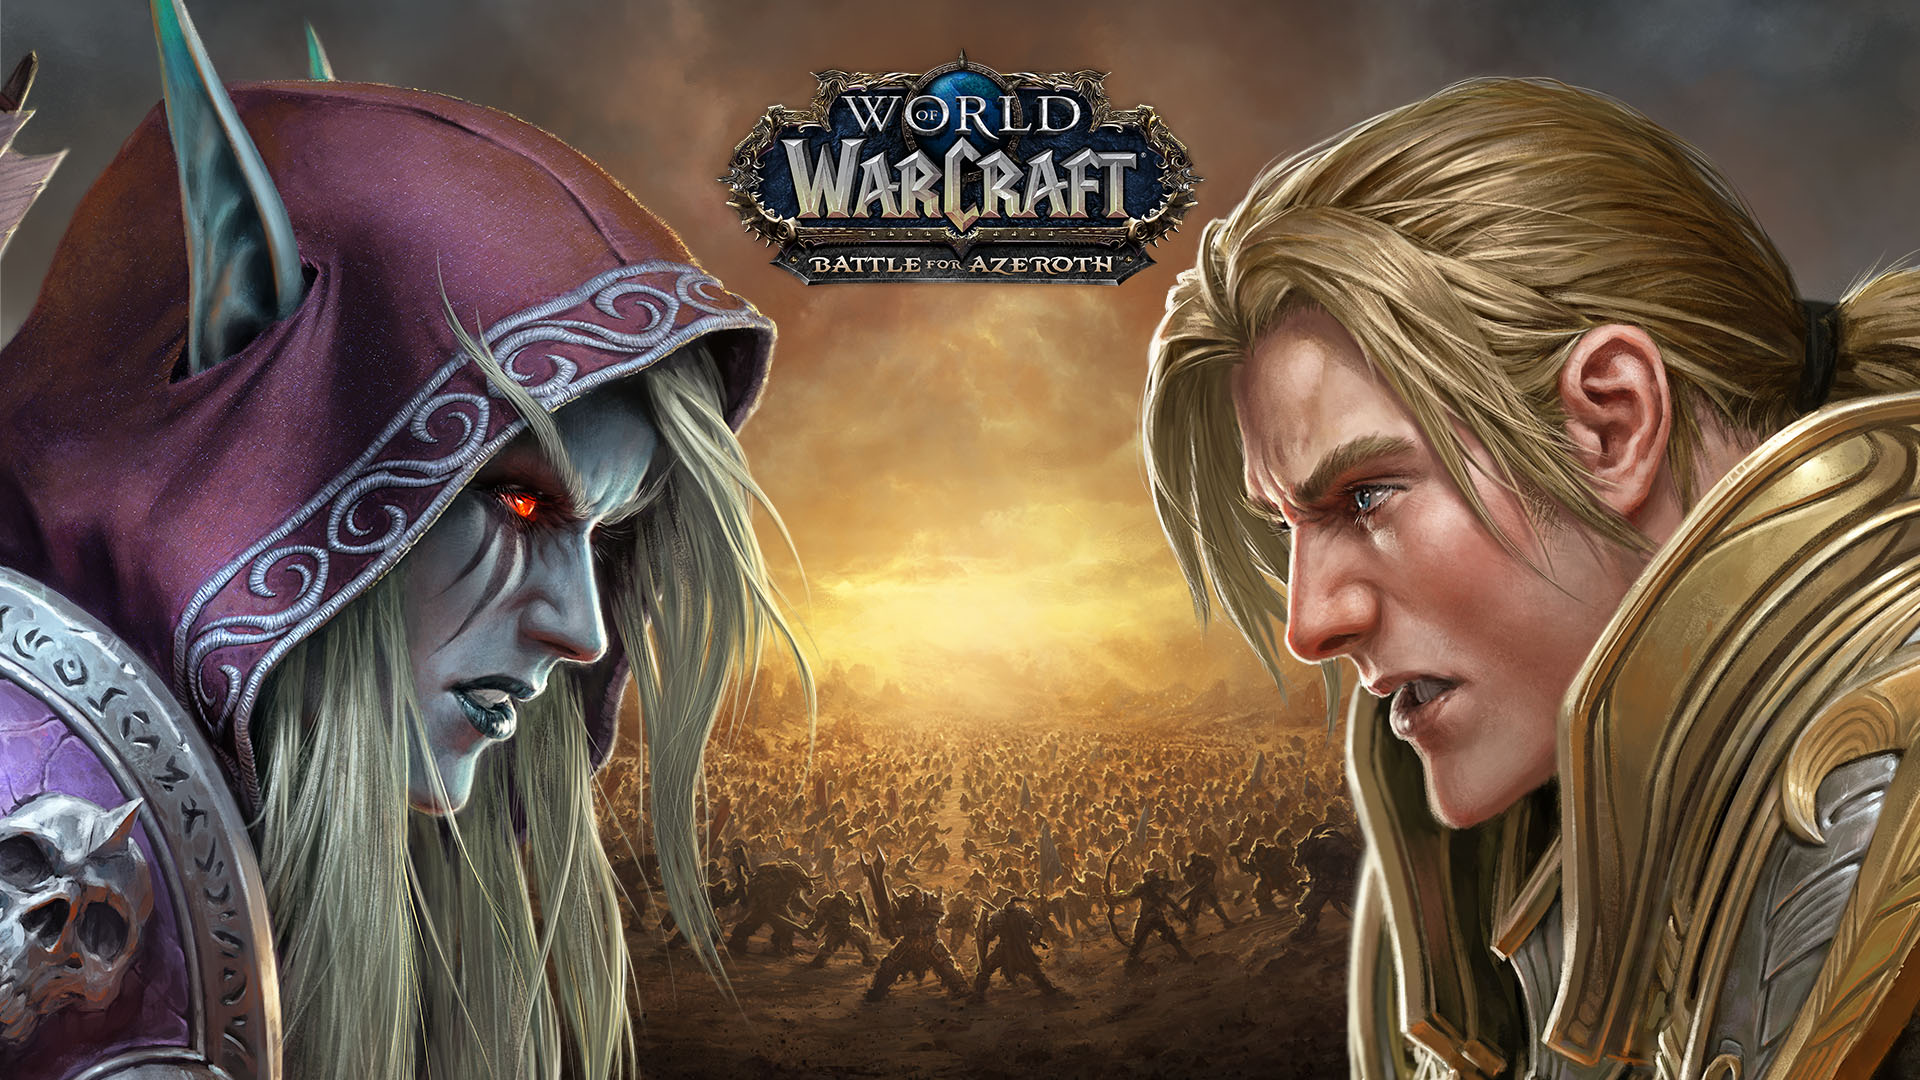 Blizzard is offering double XP to World of Warcraft players